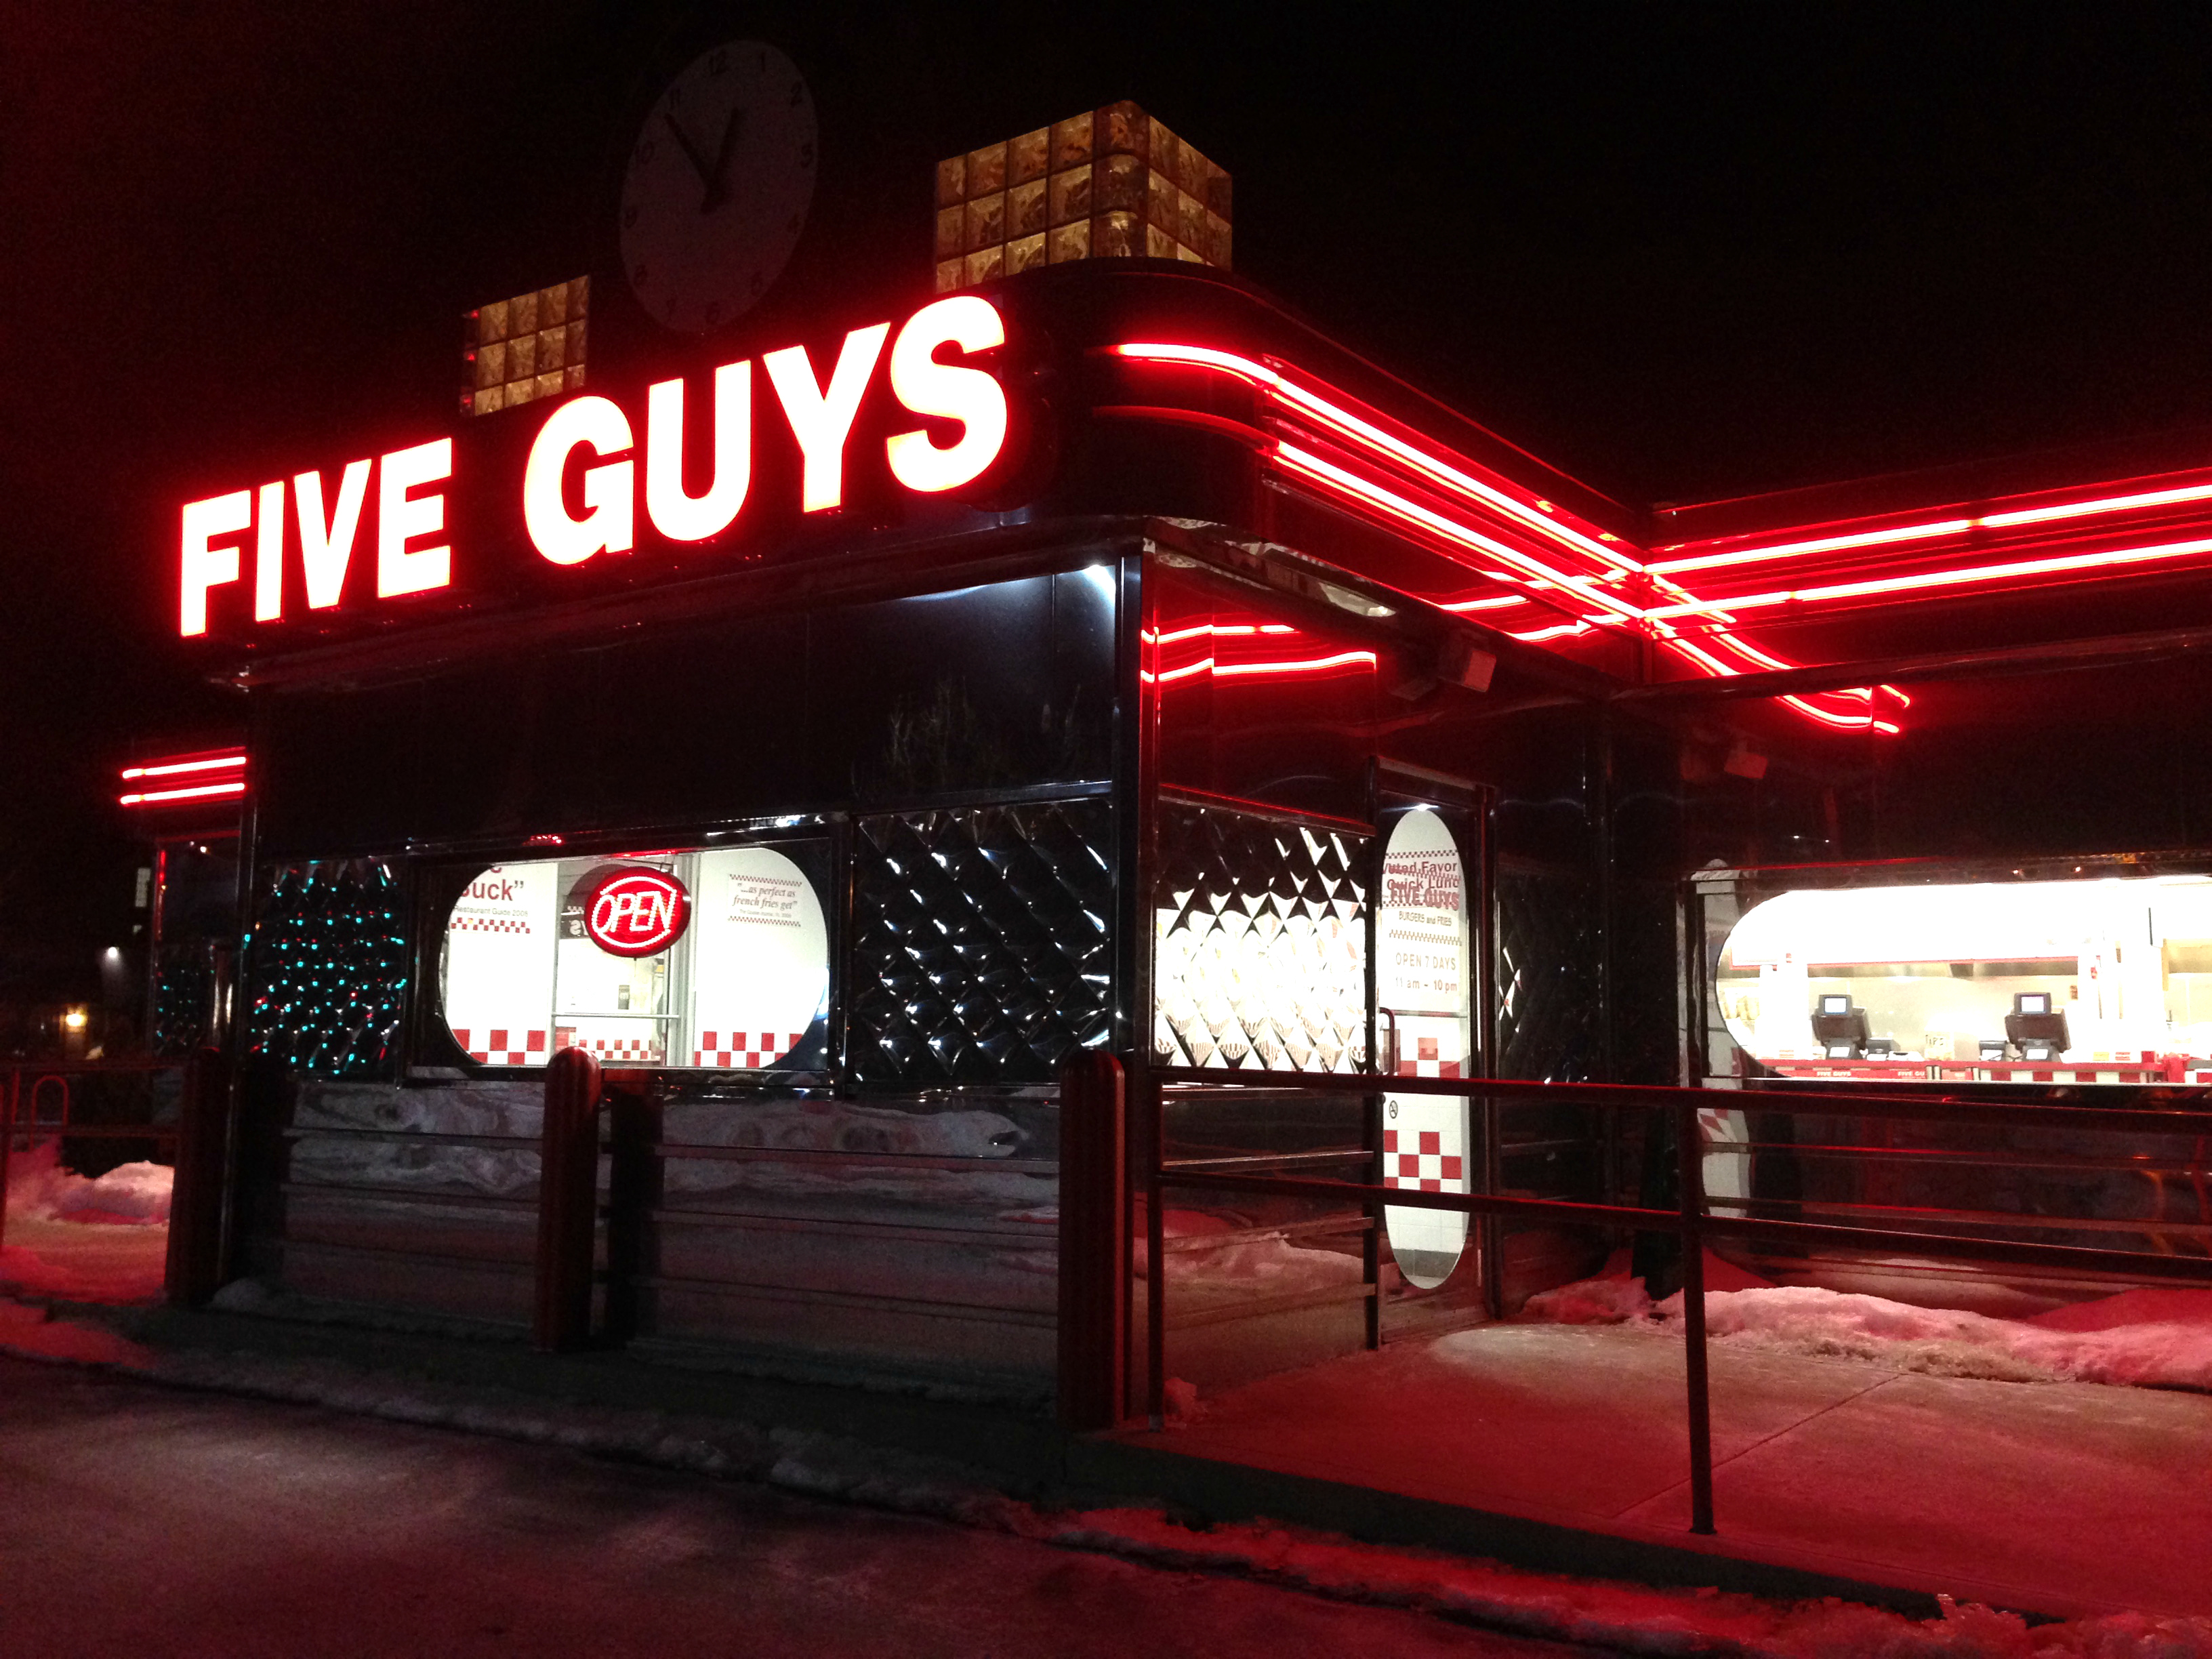 The outside of a Five Guys fast food restaurant